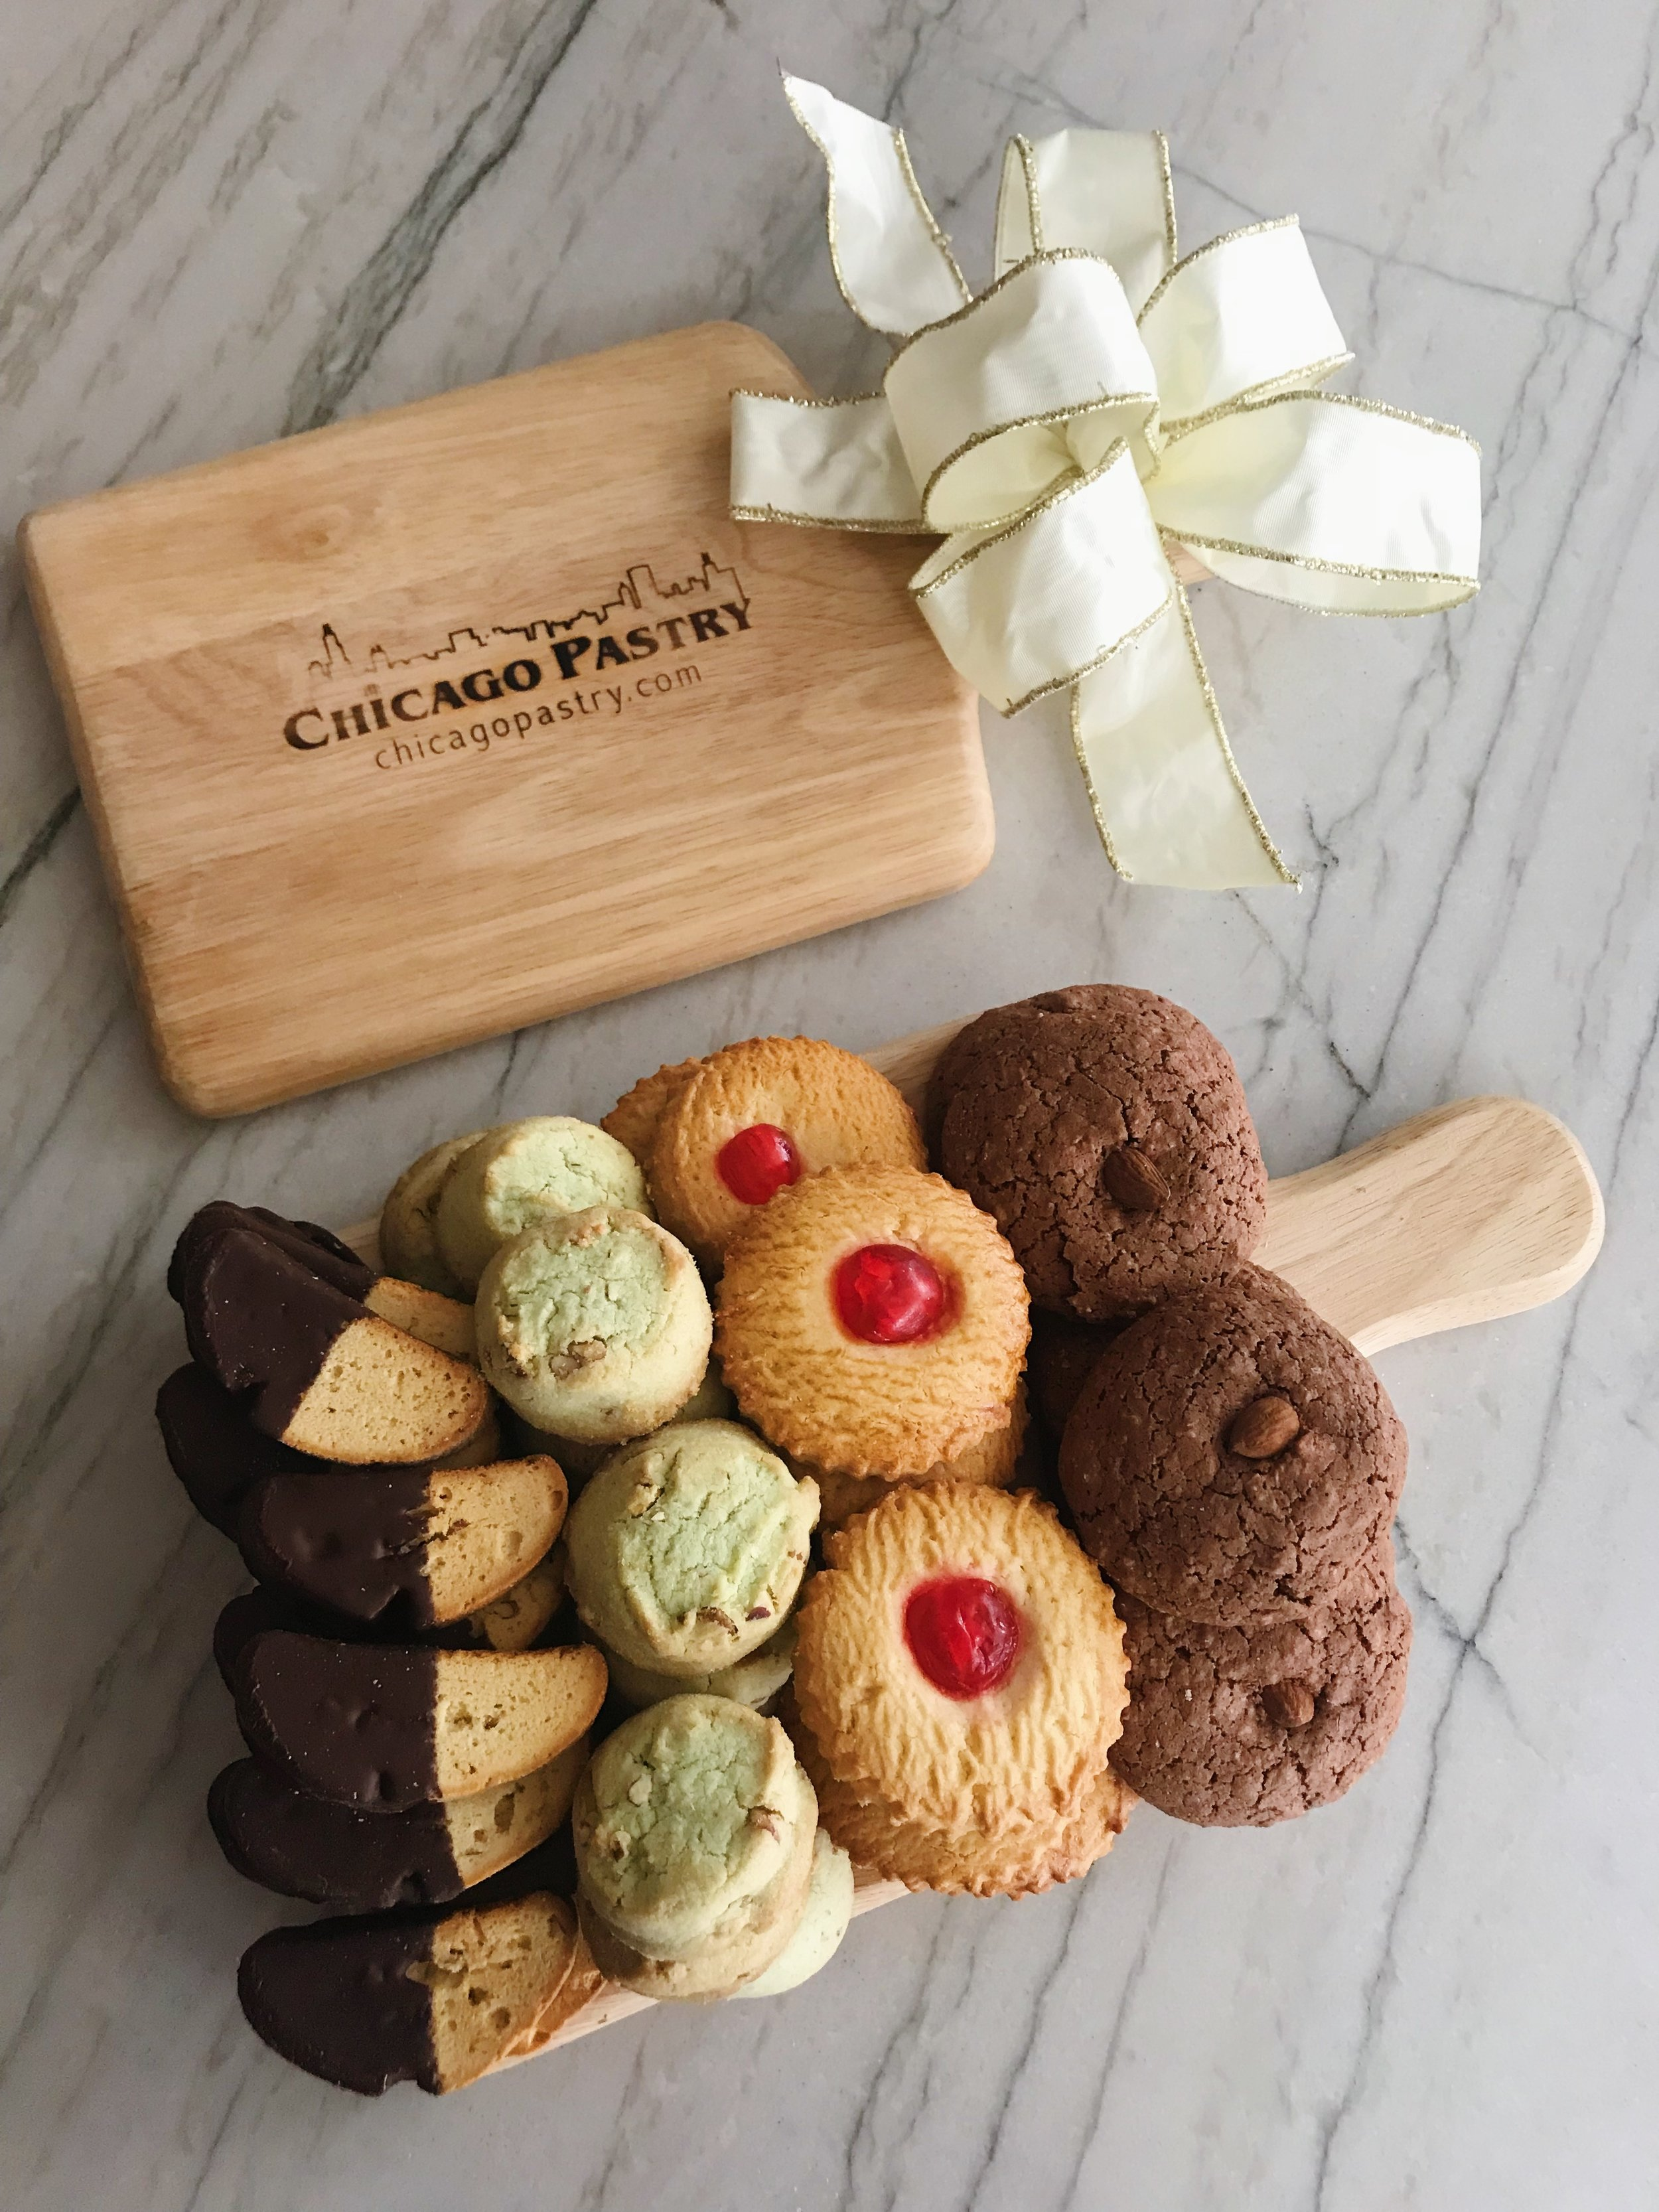 Wooden Cutting Board with Cookies